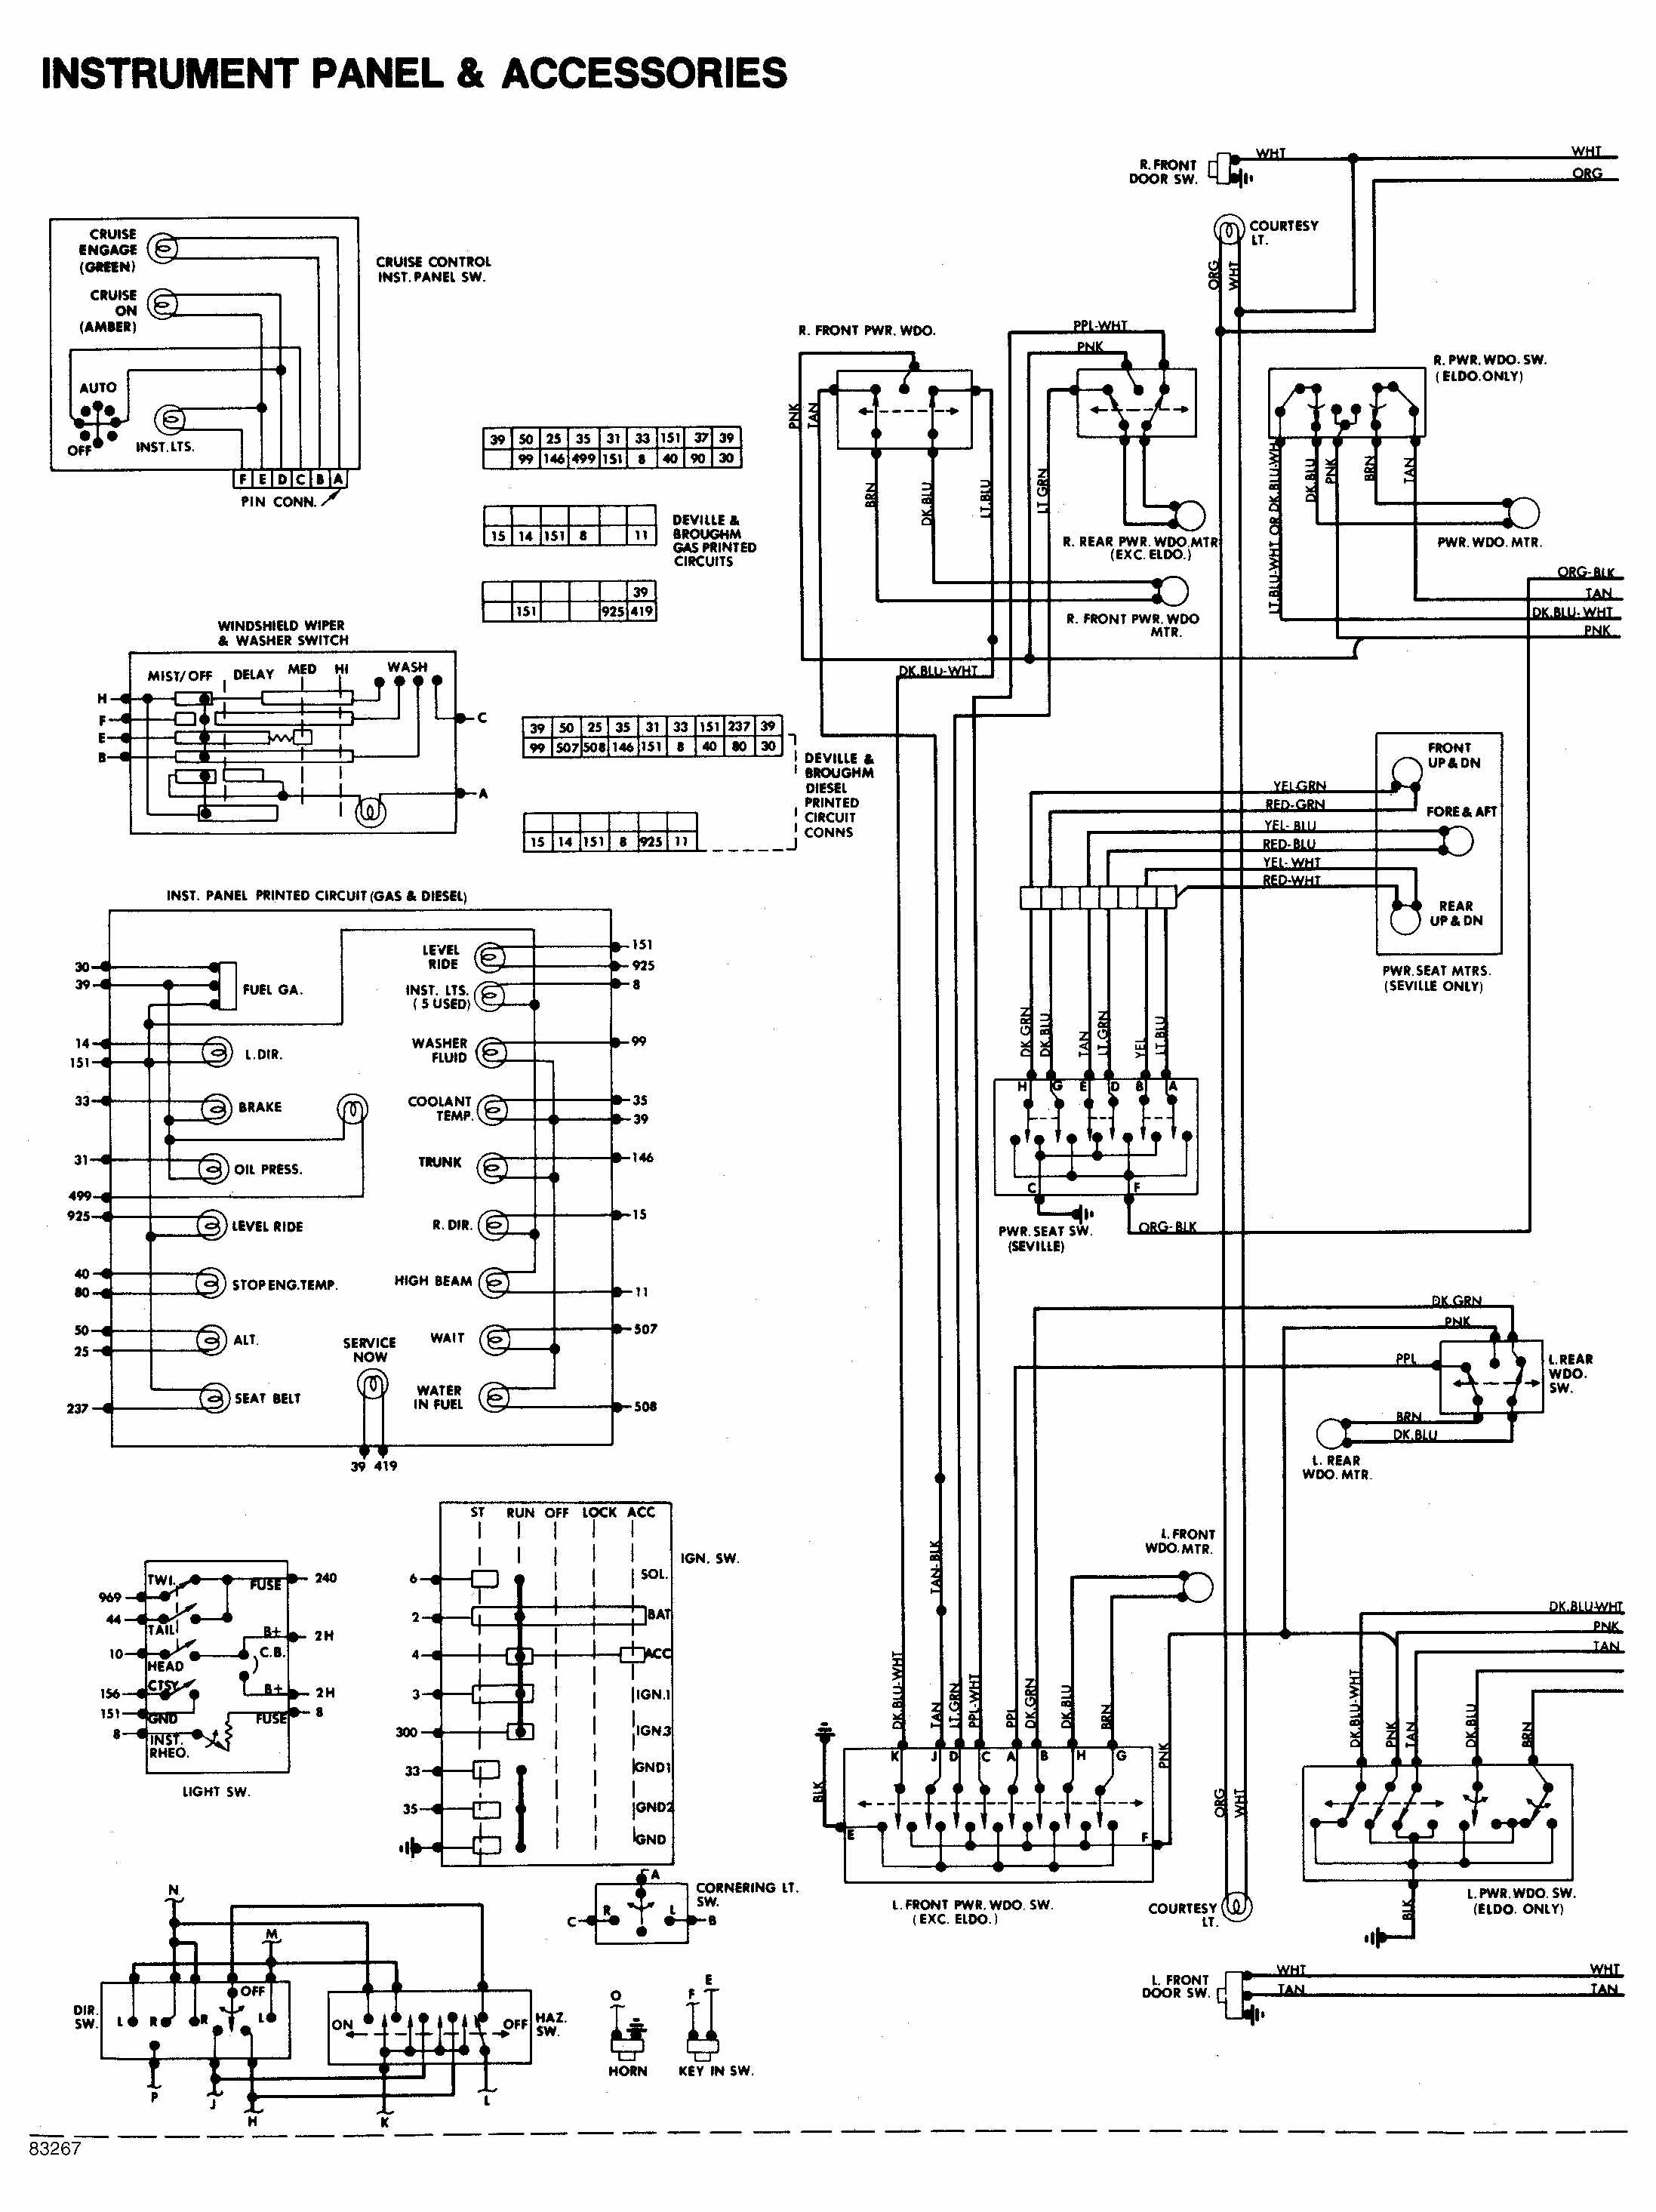 instrument panel and accessories wiring diagram of 1984 cadillac deville 1981 el camino wiring diagram 71 el camino wiring diagram \u2022 wiring 1981 K20 Step Side at panicattacktreatment.co